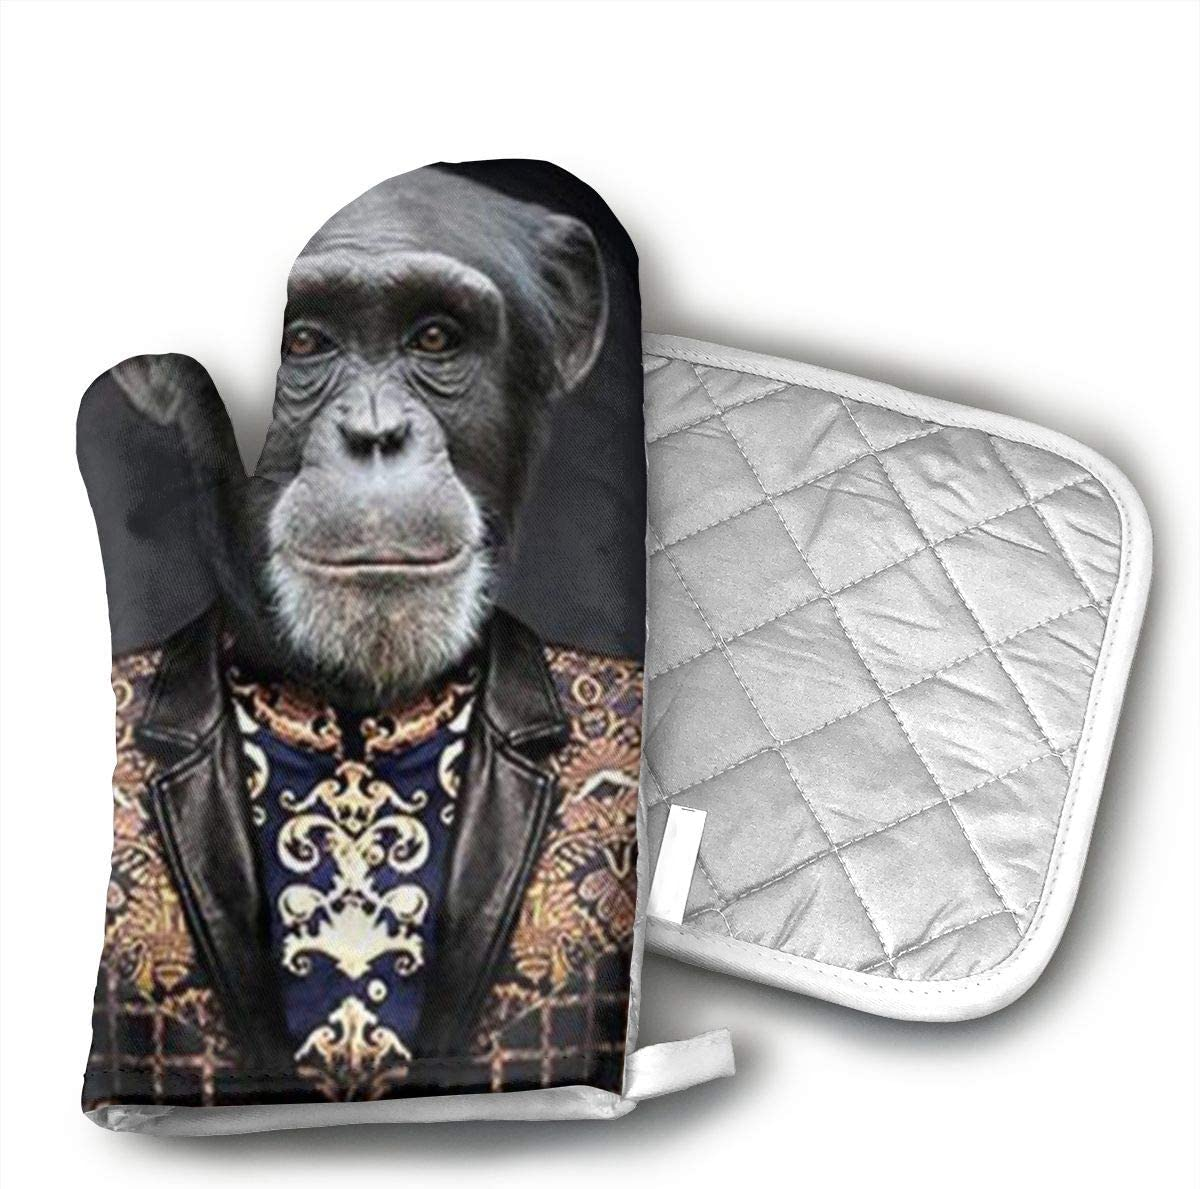 EDAKEE Gorilla -6 Oven Mitts and Thermal Pads for All The Best Kitchen Grill